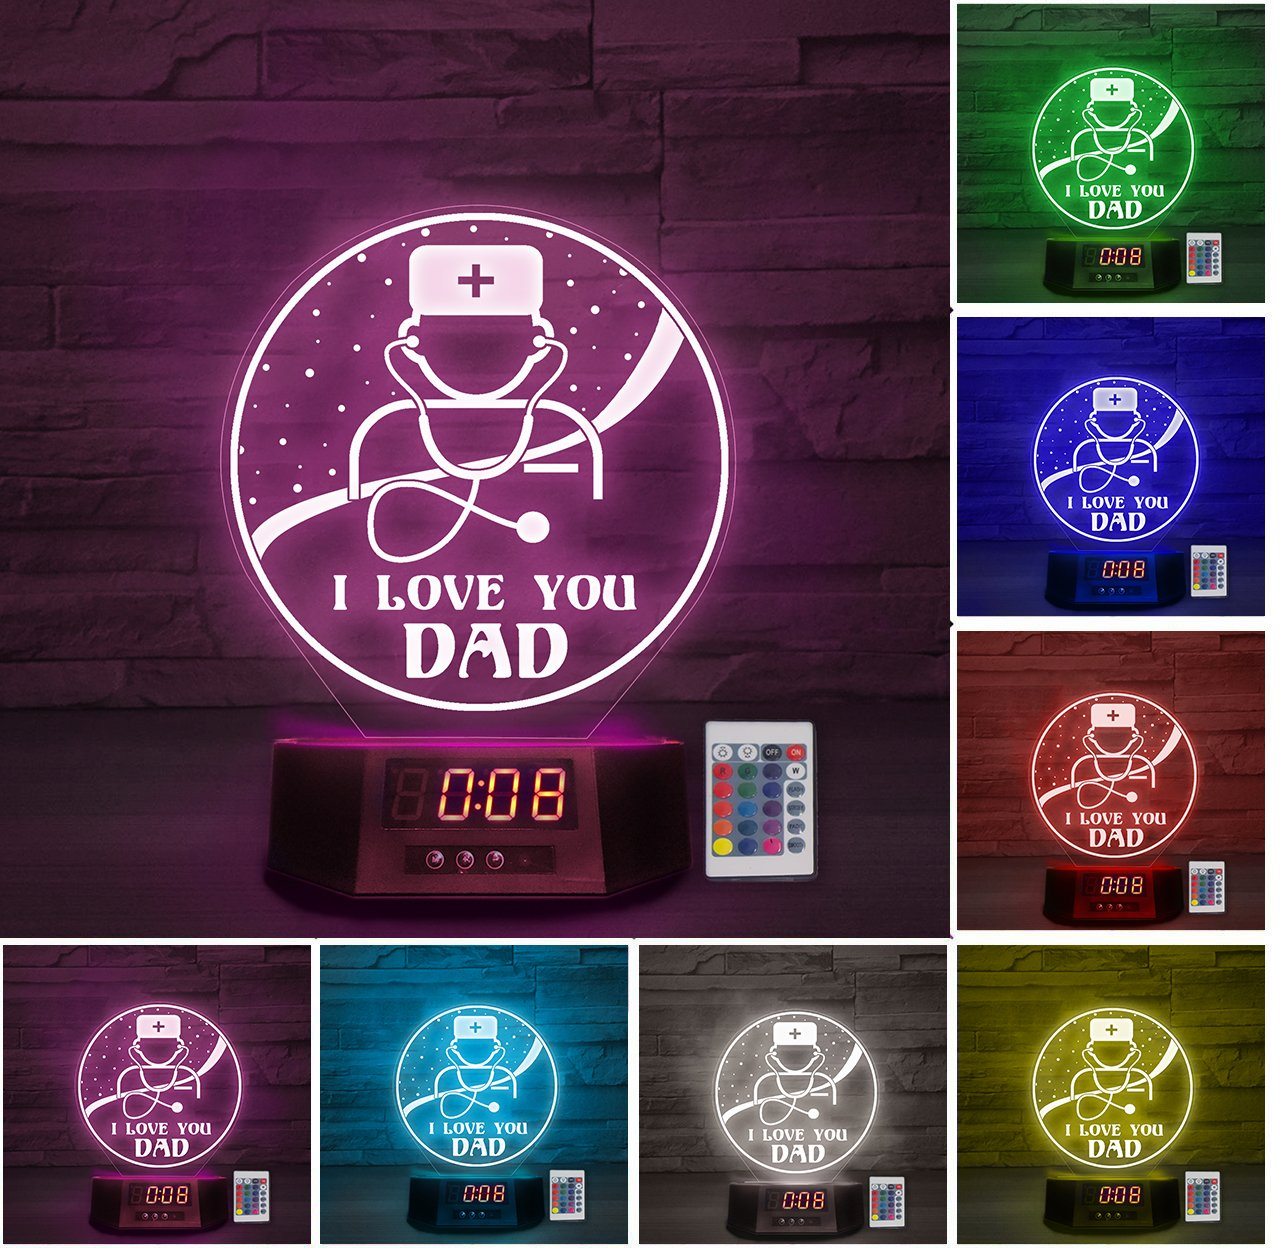 LED Lamp - I love you DAD - Doctor ATDK190401A